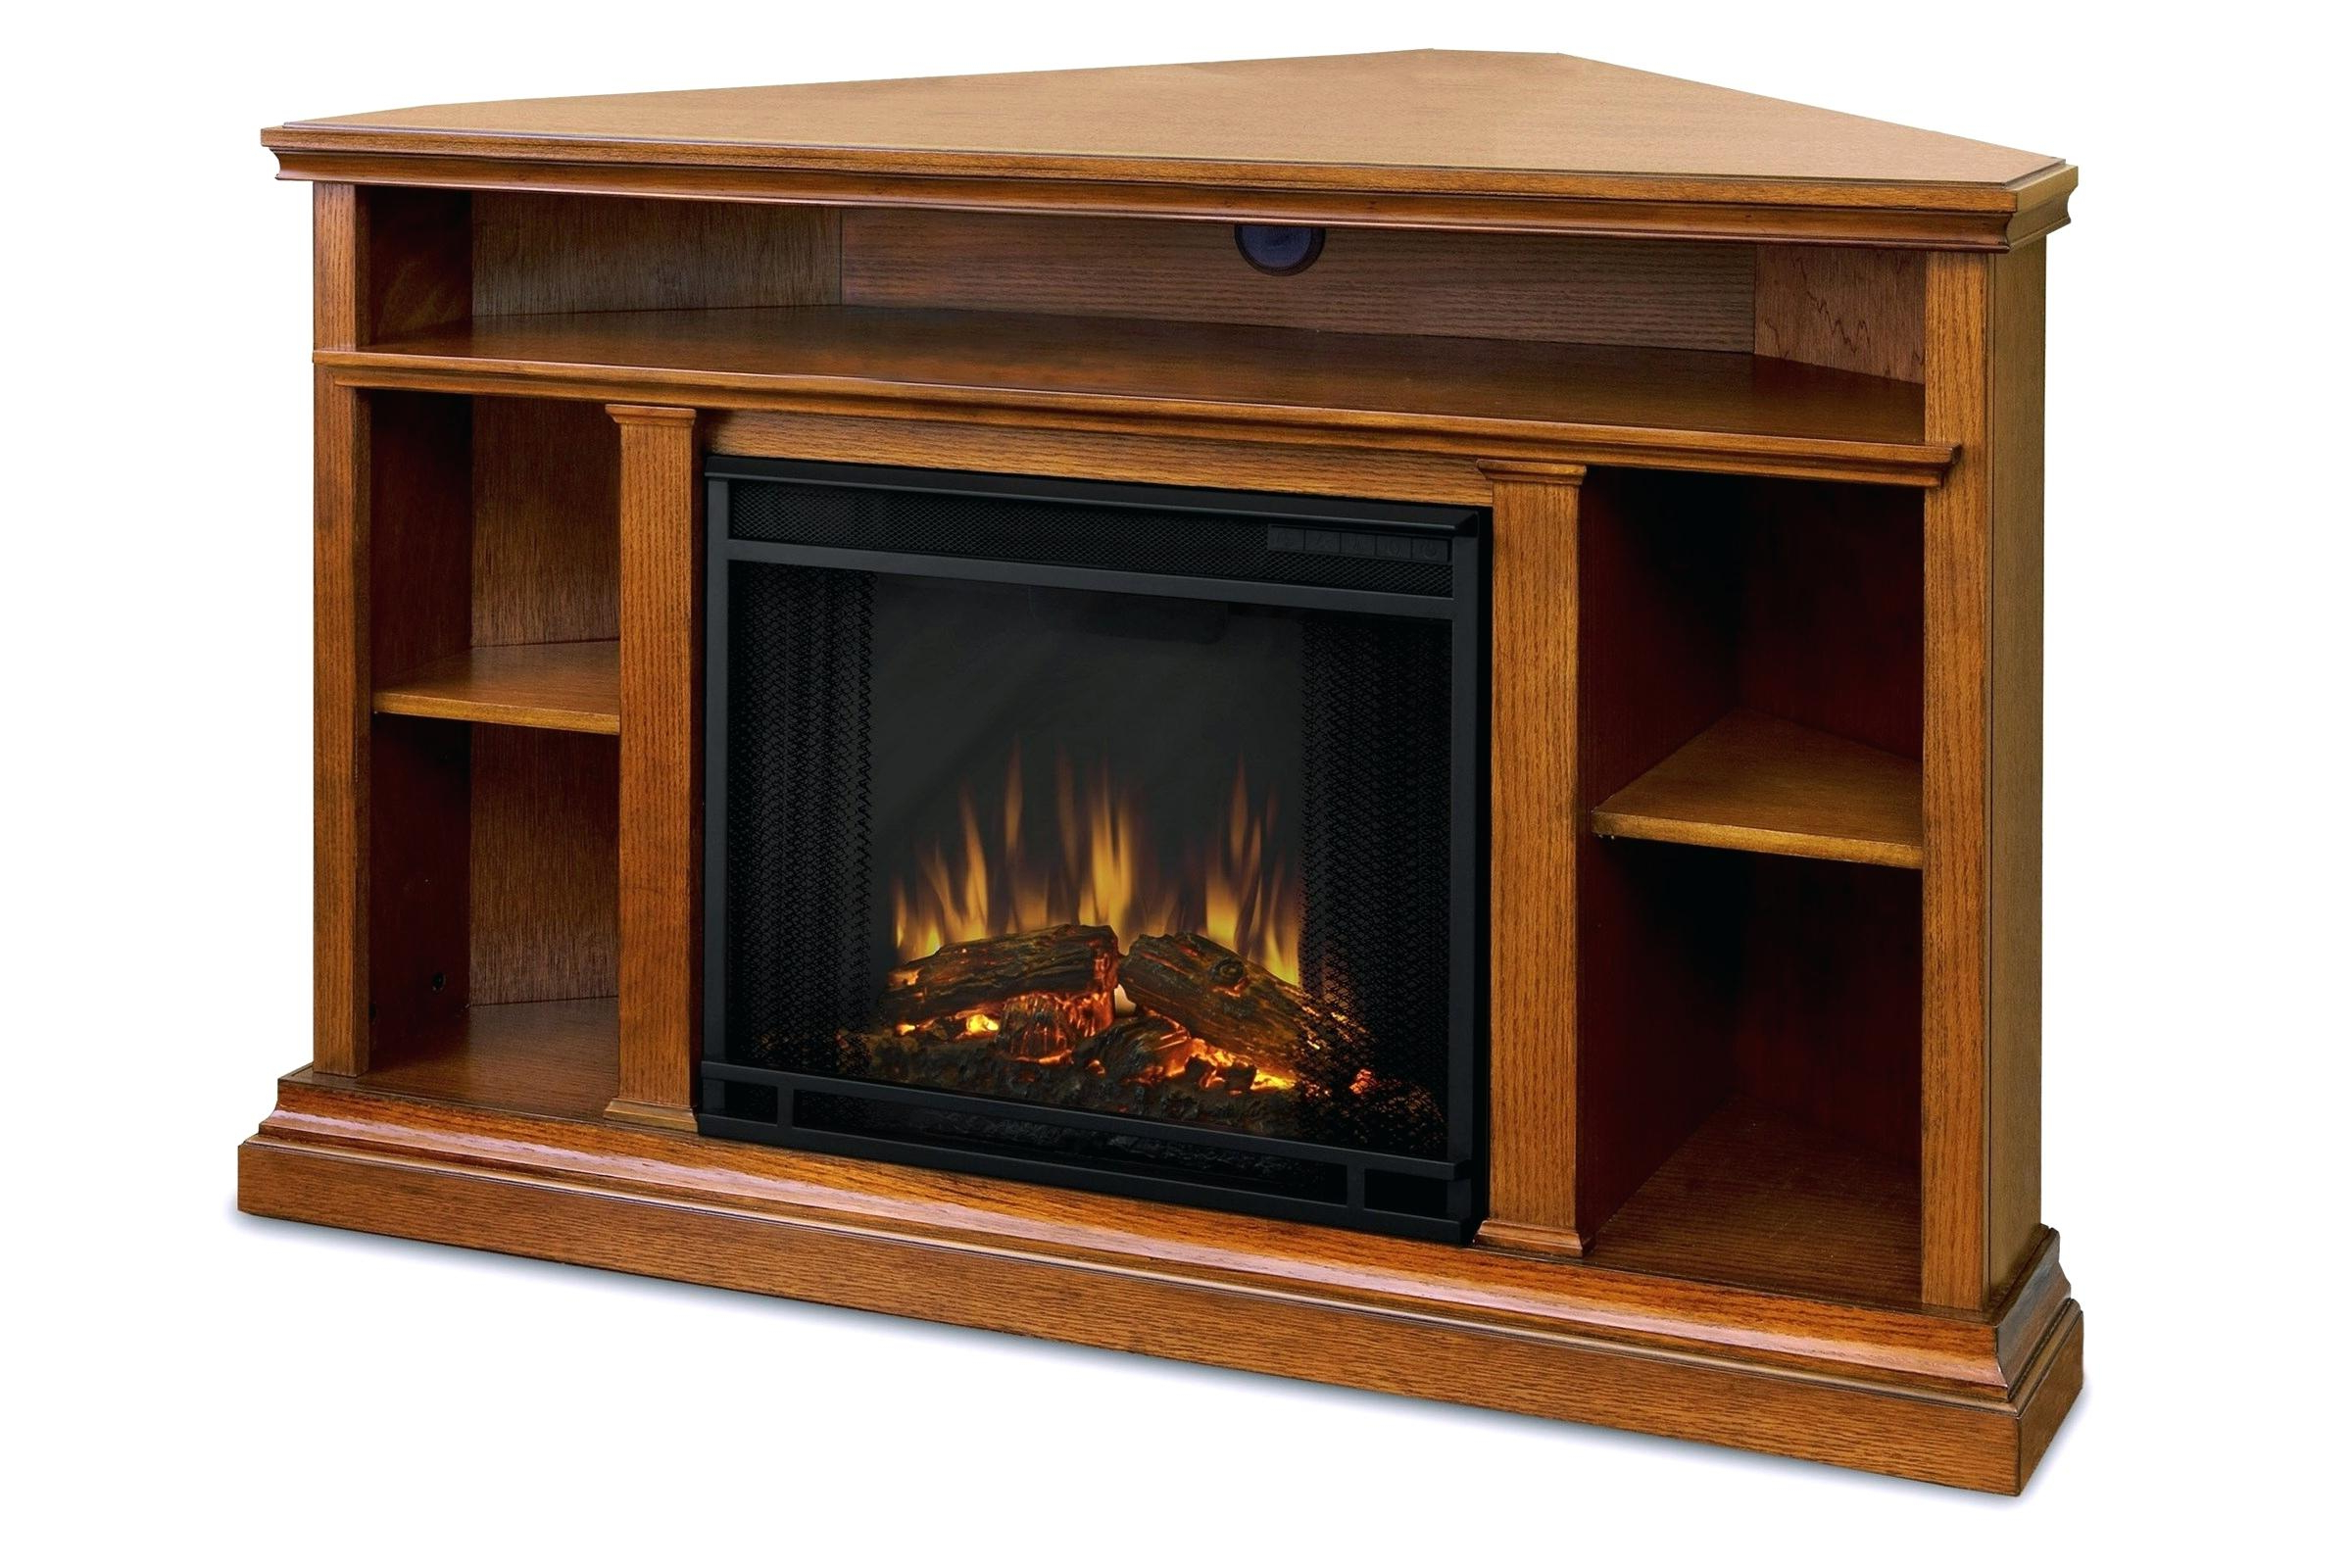 Big Lots Tv Stands Intended For Well Known Corner Fireplace Tv Stand Big Lots Black Electric Lowes (View 4 of 20)